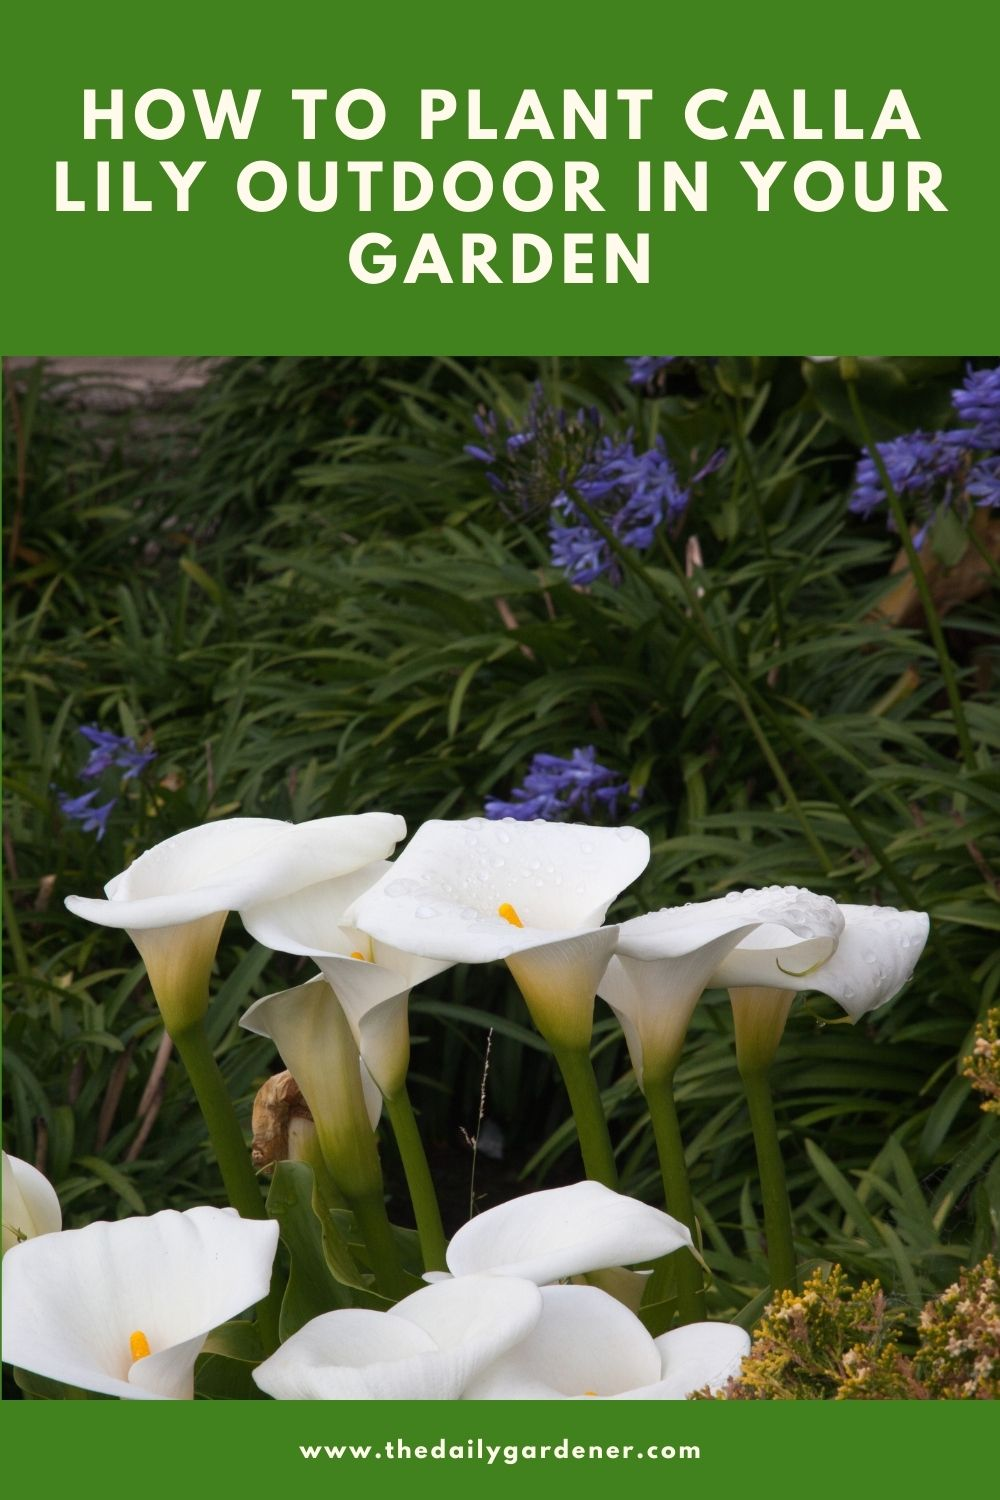 How to Plant Calla Lily Outdoor in Your Garden 2